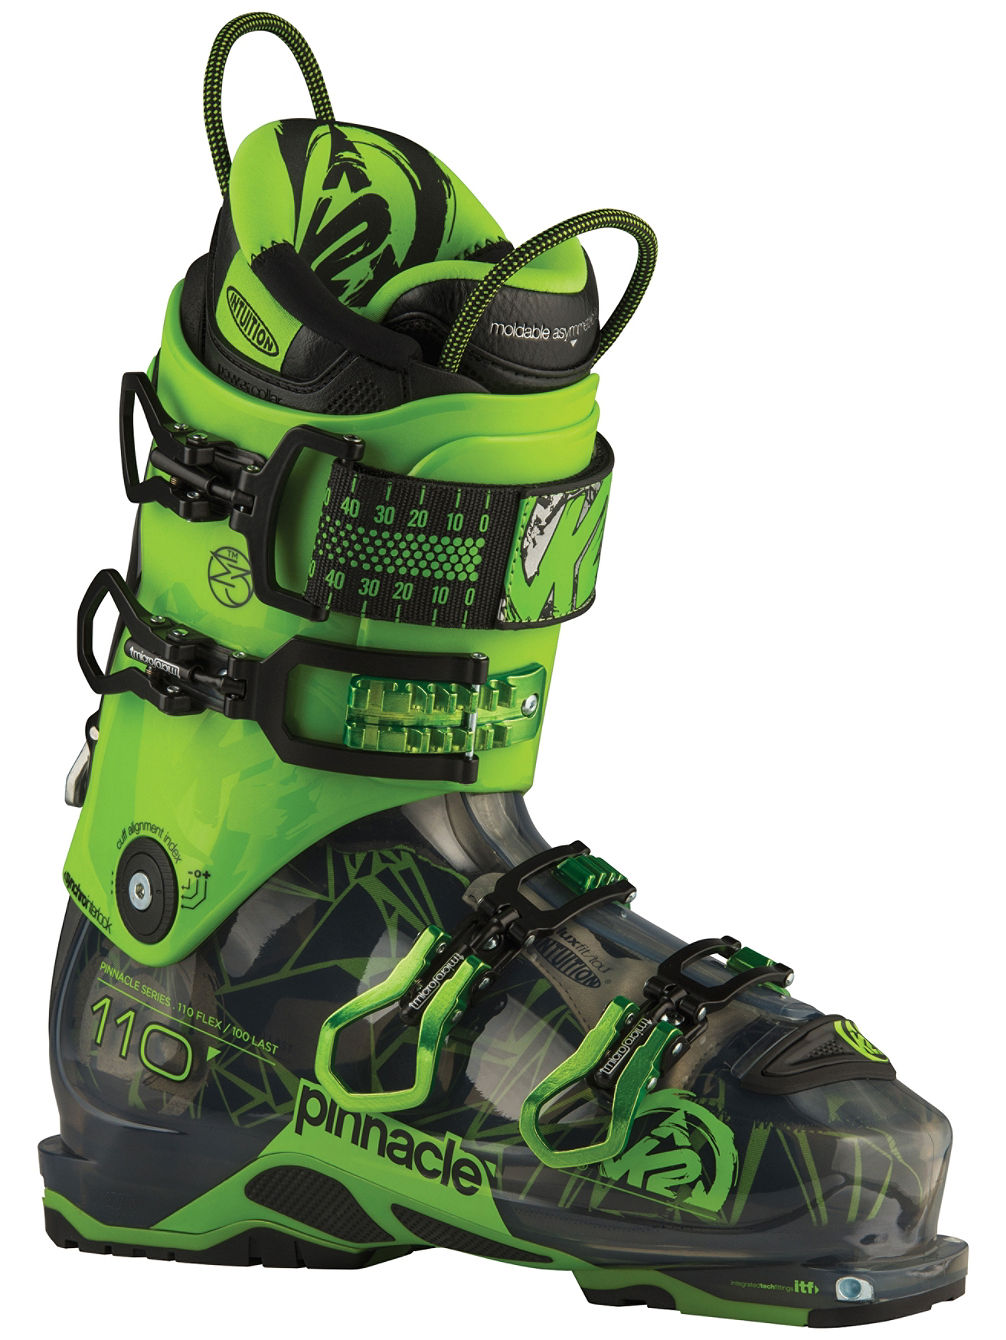 Pinnacle 110 Hv (102 mm) Botas esquí